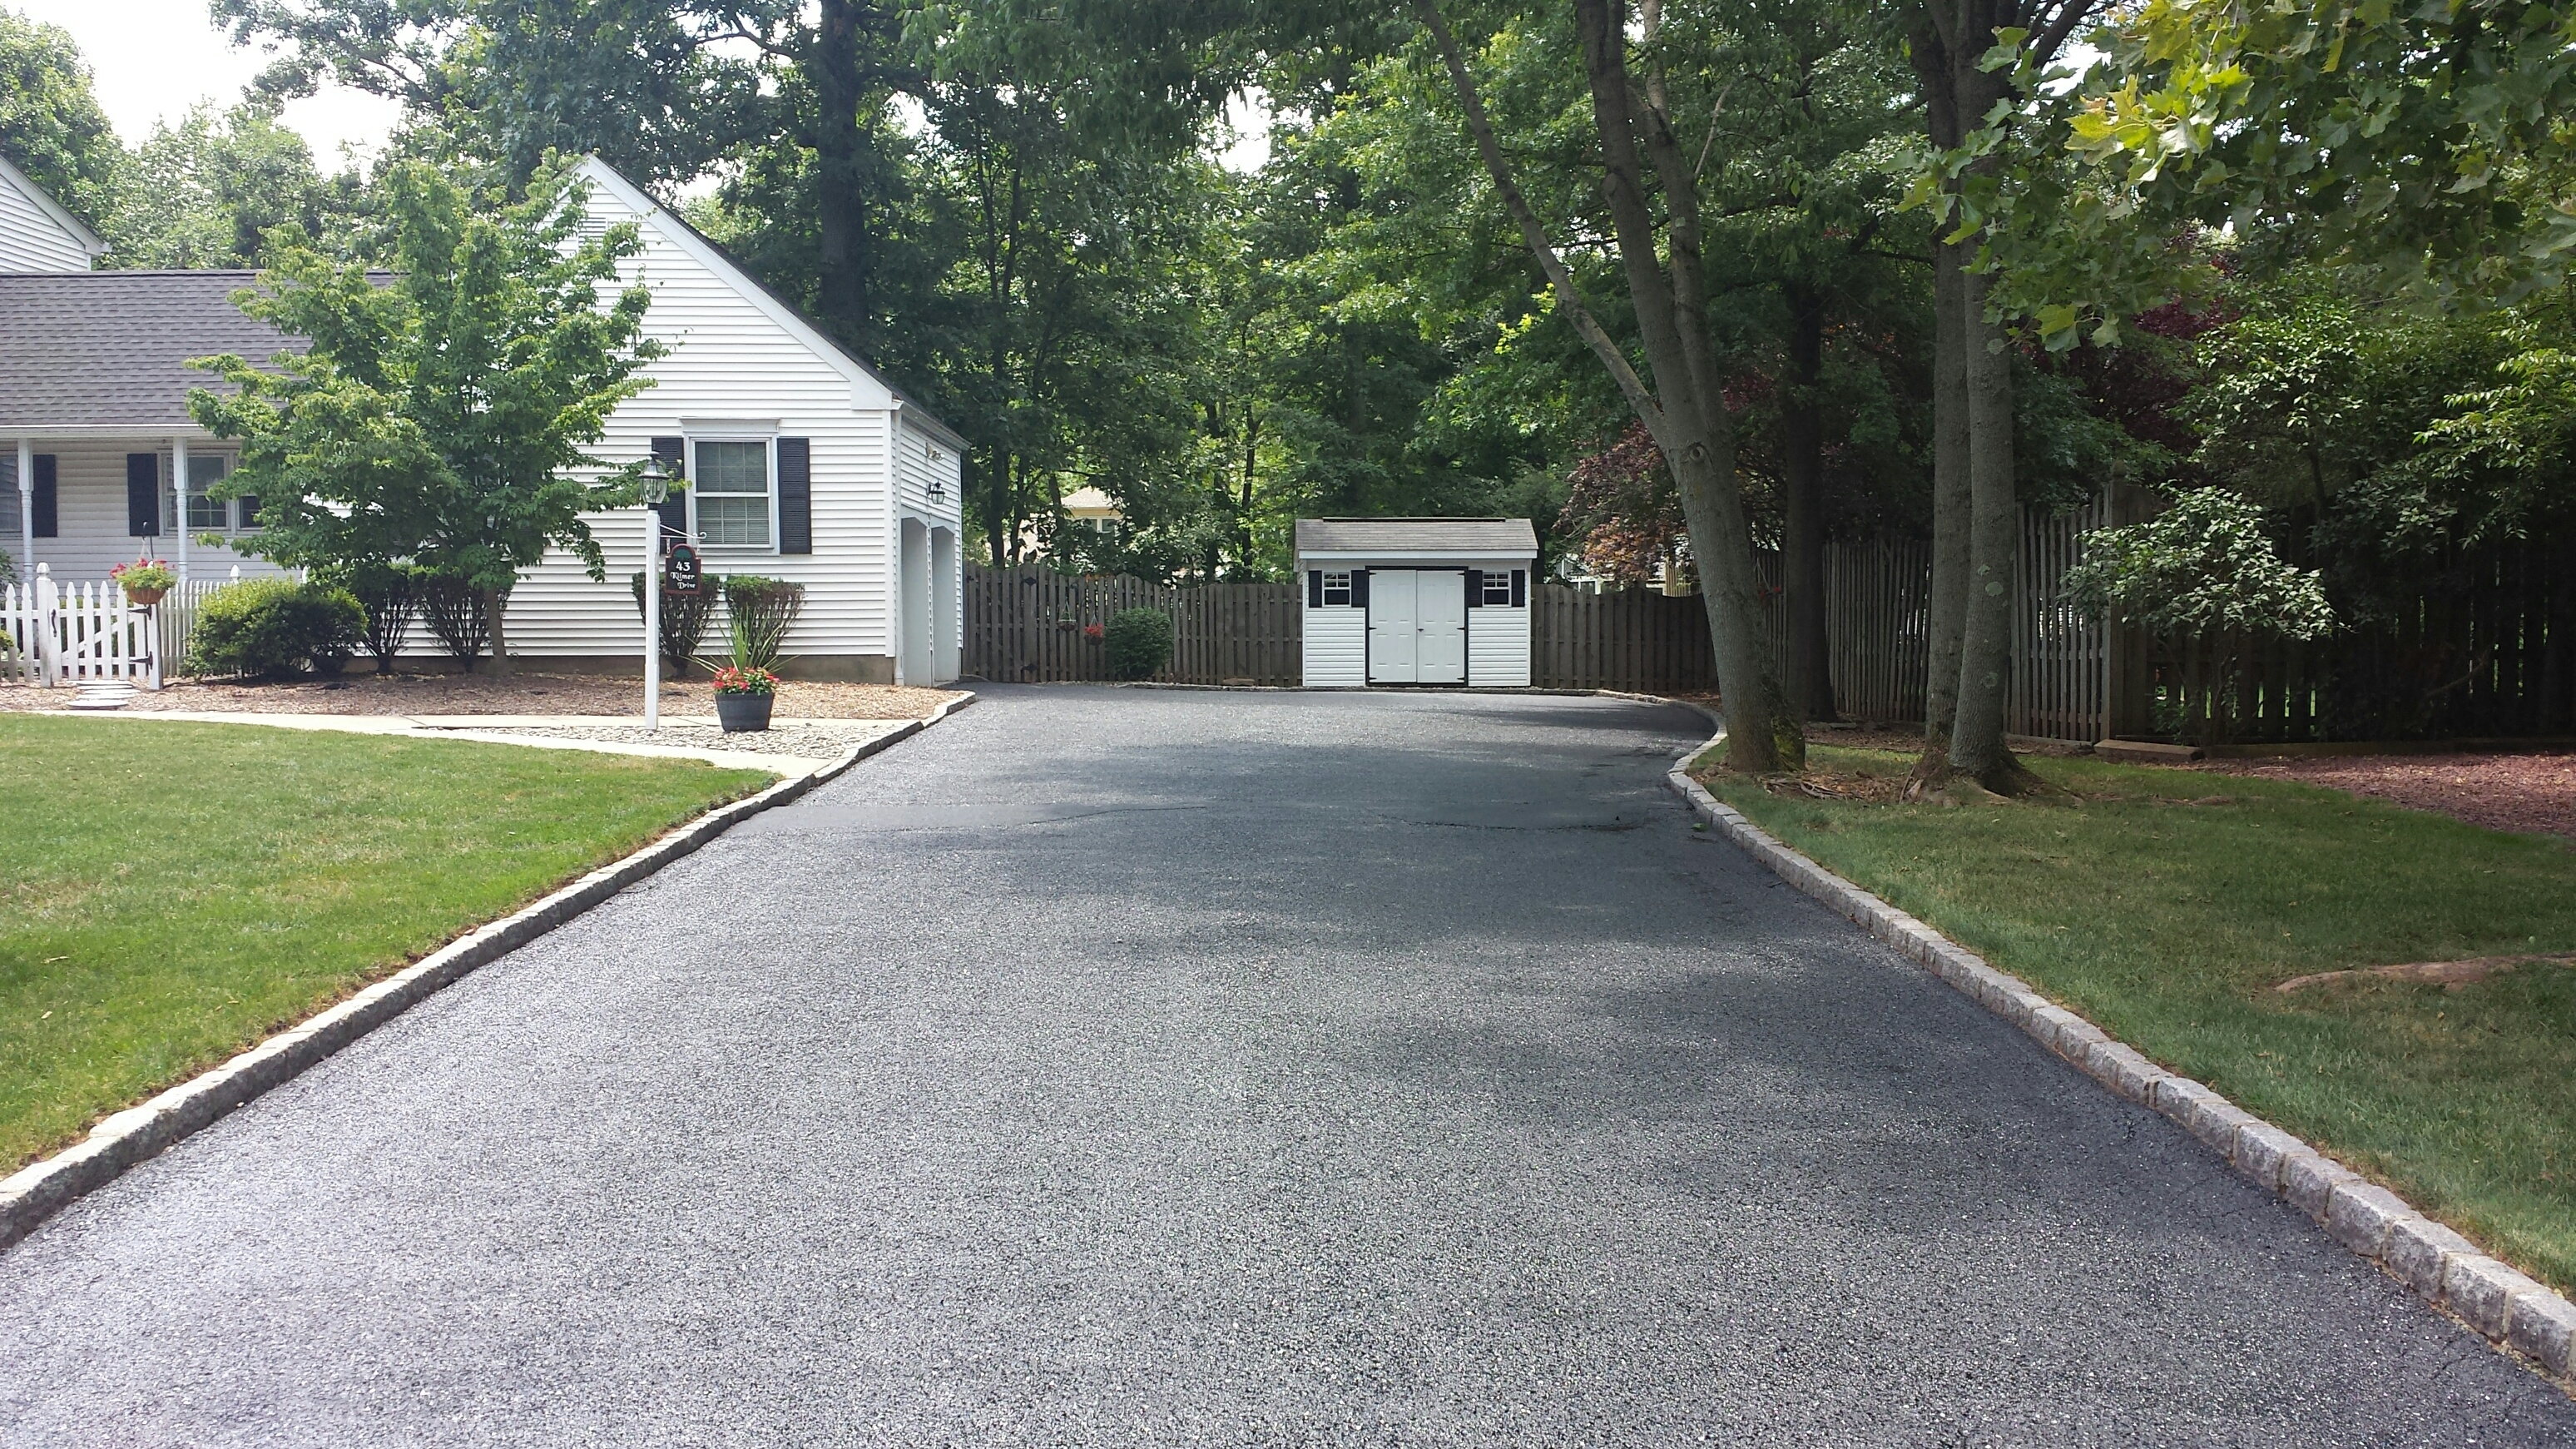 2018 asphalt paving costs install resurface replace Exterior stone cost per square foot